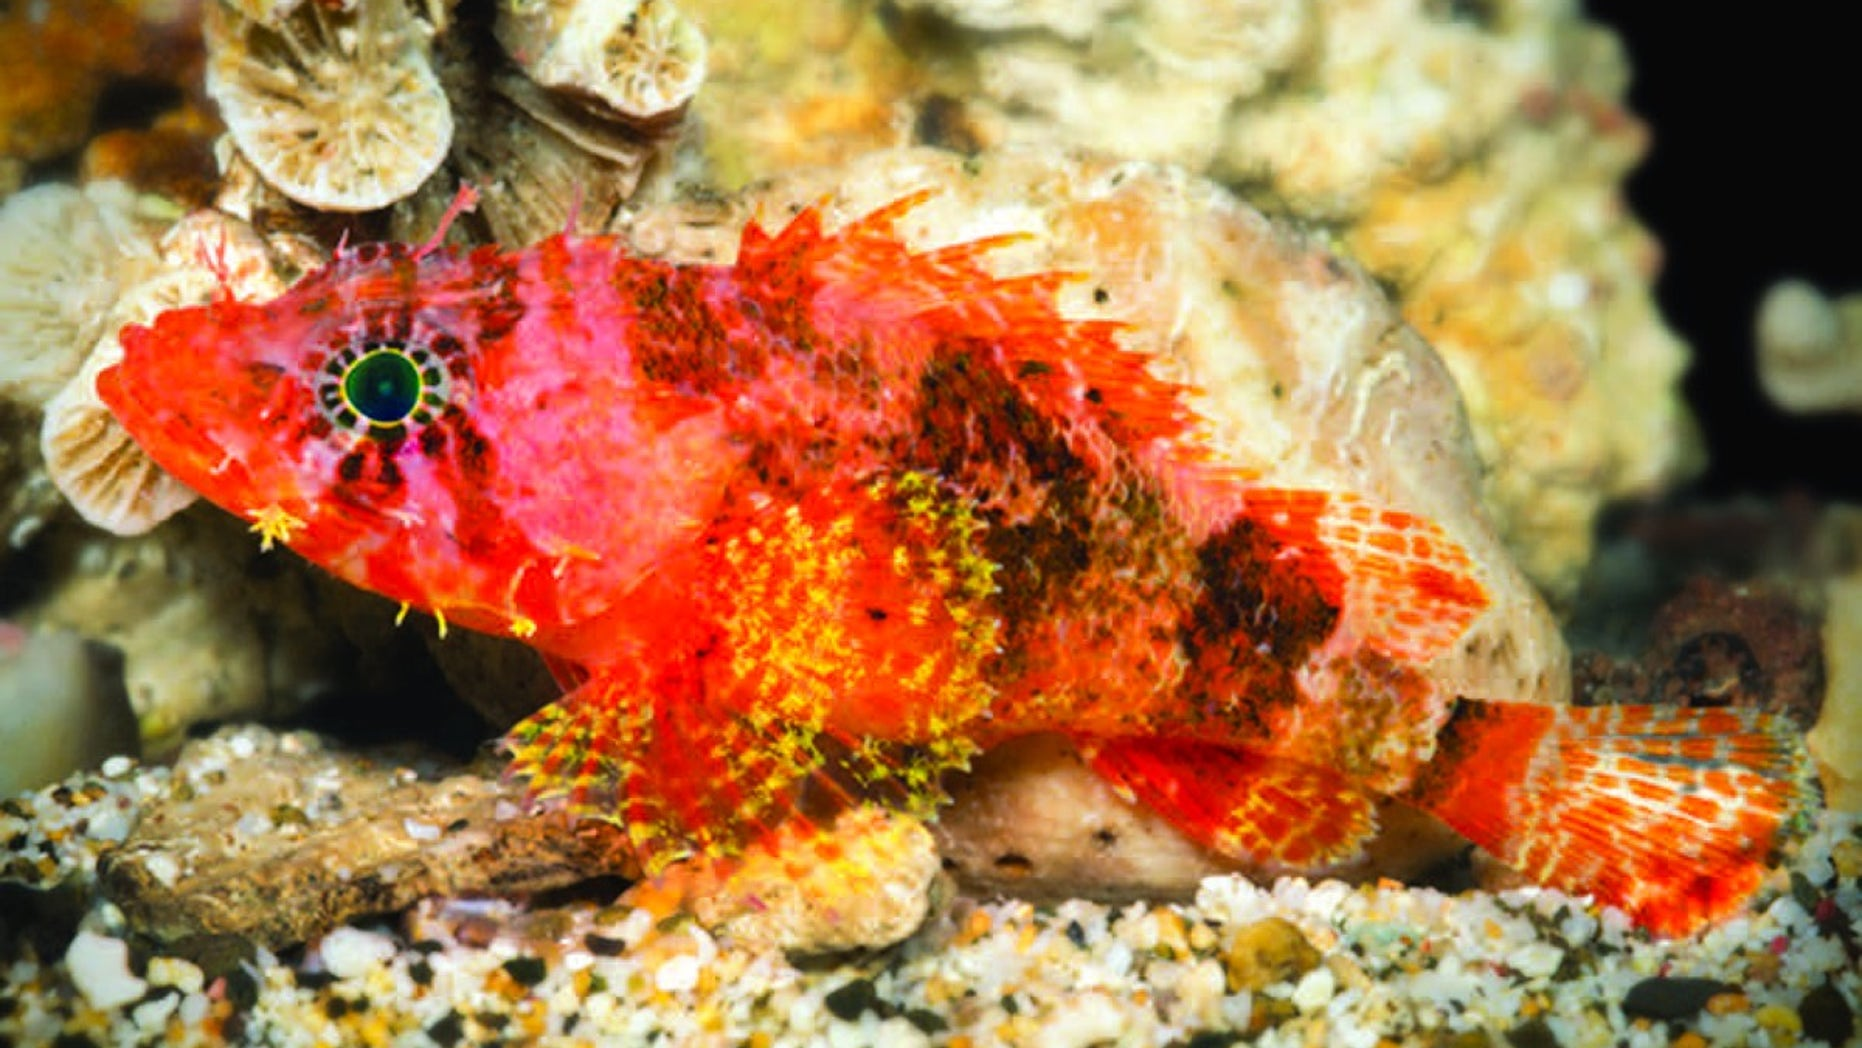 A new species of scorpionfish, <em>Scorpaenodes barrybrowni</em>, discovered in the deep reefs of the Caribbean. This scorpionfish is distinguished from its relatives by the elongated rays on its fins and by i